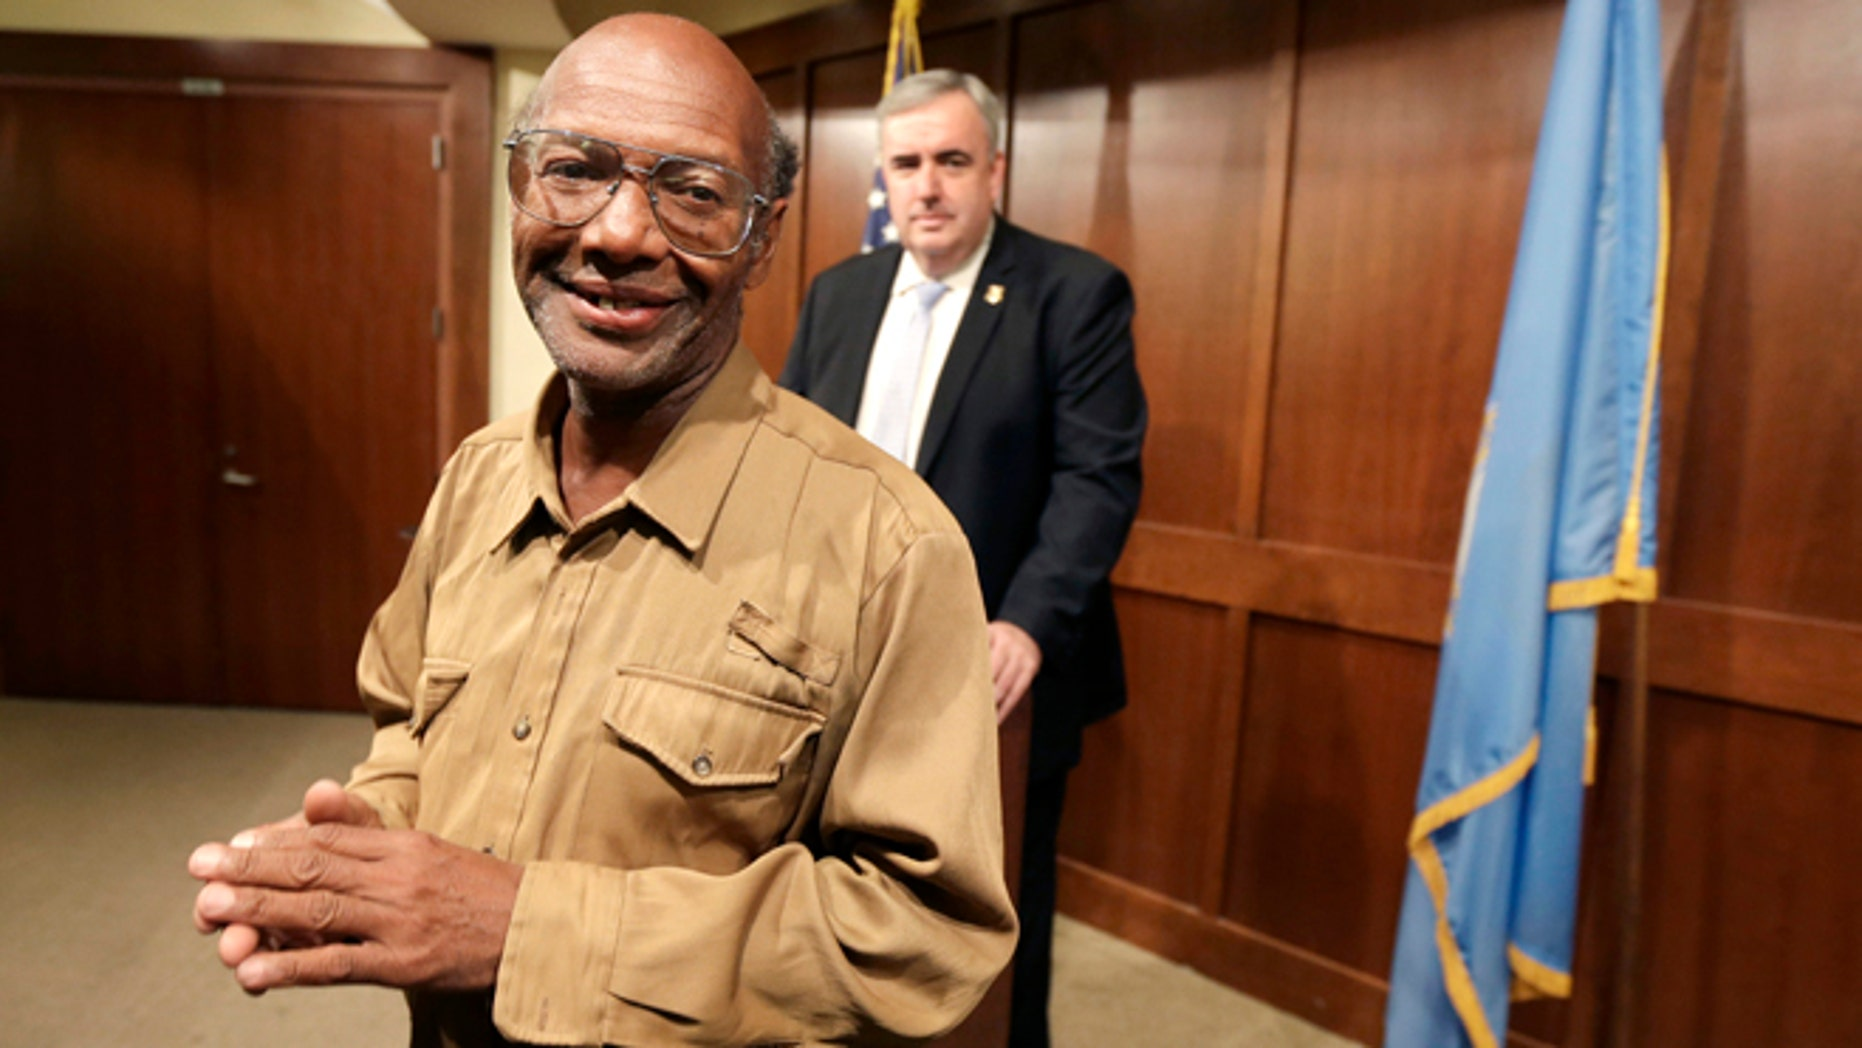 Sept. 16, 2013: Glen James, of Boston, left, smiles in the direction of members of the media as Boston Police Commissioner Edward Davis, right, looks on during a news conference at the police headquarters, in Boston.